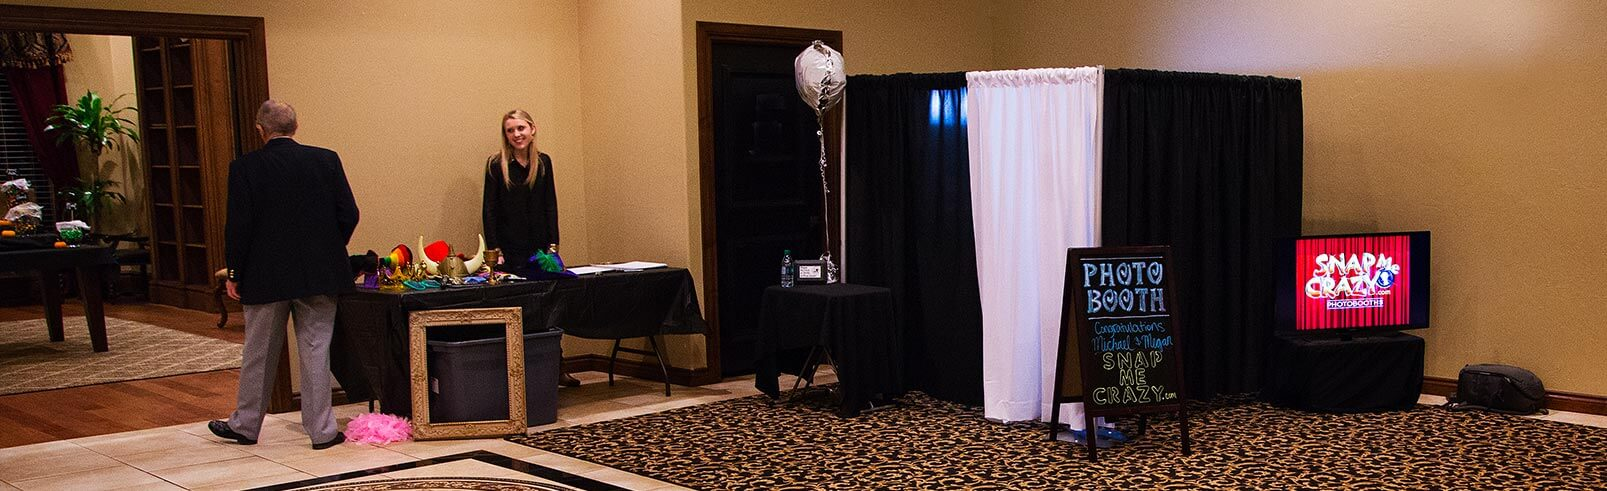 Snap Me Crazy Photo Booth of Oklahoma and Edmond at Homebuilders Events Center in OKC